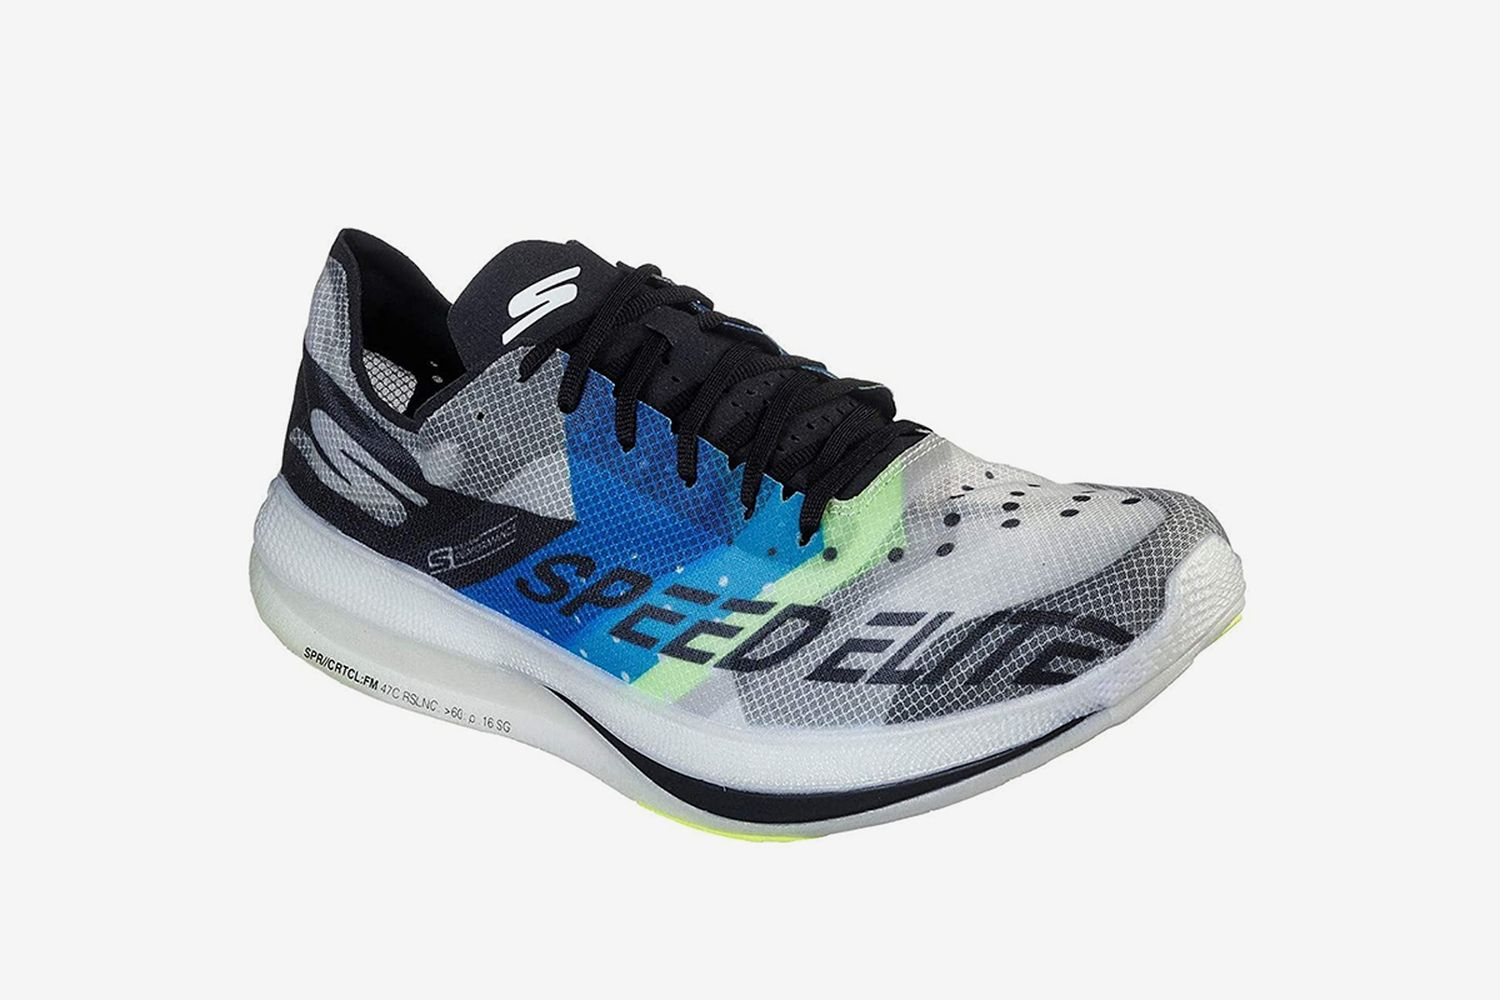 GOrun Speed Elite Hyper Shoe